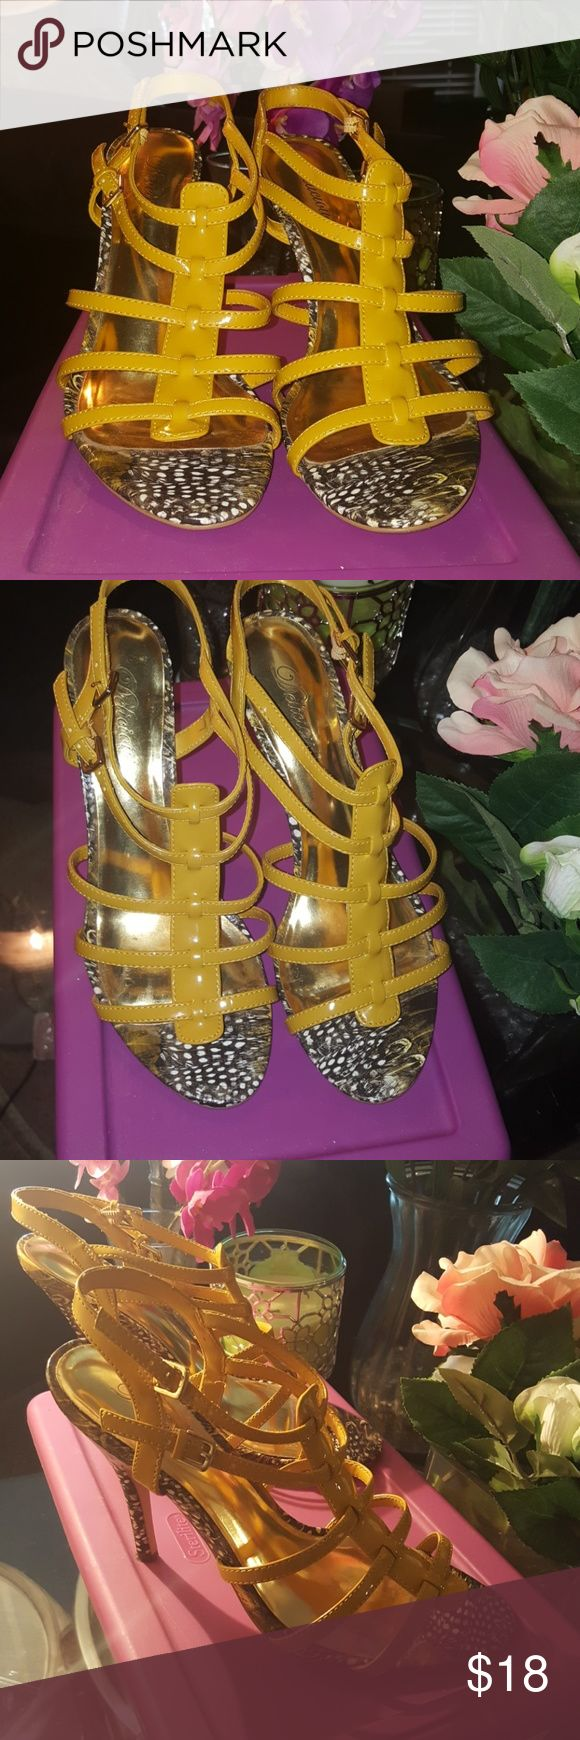 Mustard and animal print heel open toe sandals Gorgeous sandals. Mustard and animal print In great condition  normal wear on bottom of shoes, comes with replacement heels as shown in picture. Size is 8.5| heel height 3.5   | Delicious Shoes Sandals